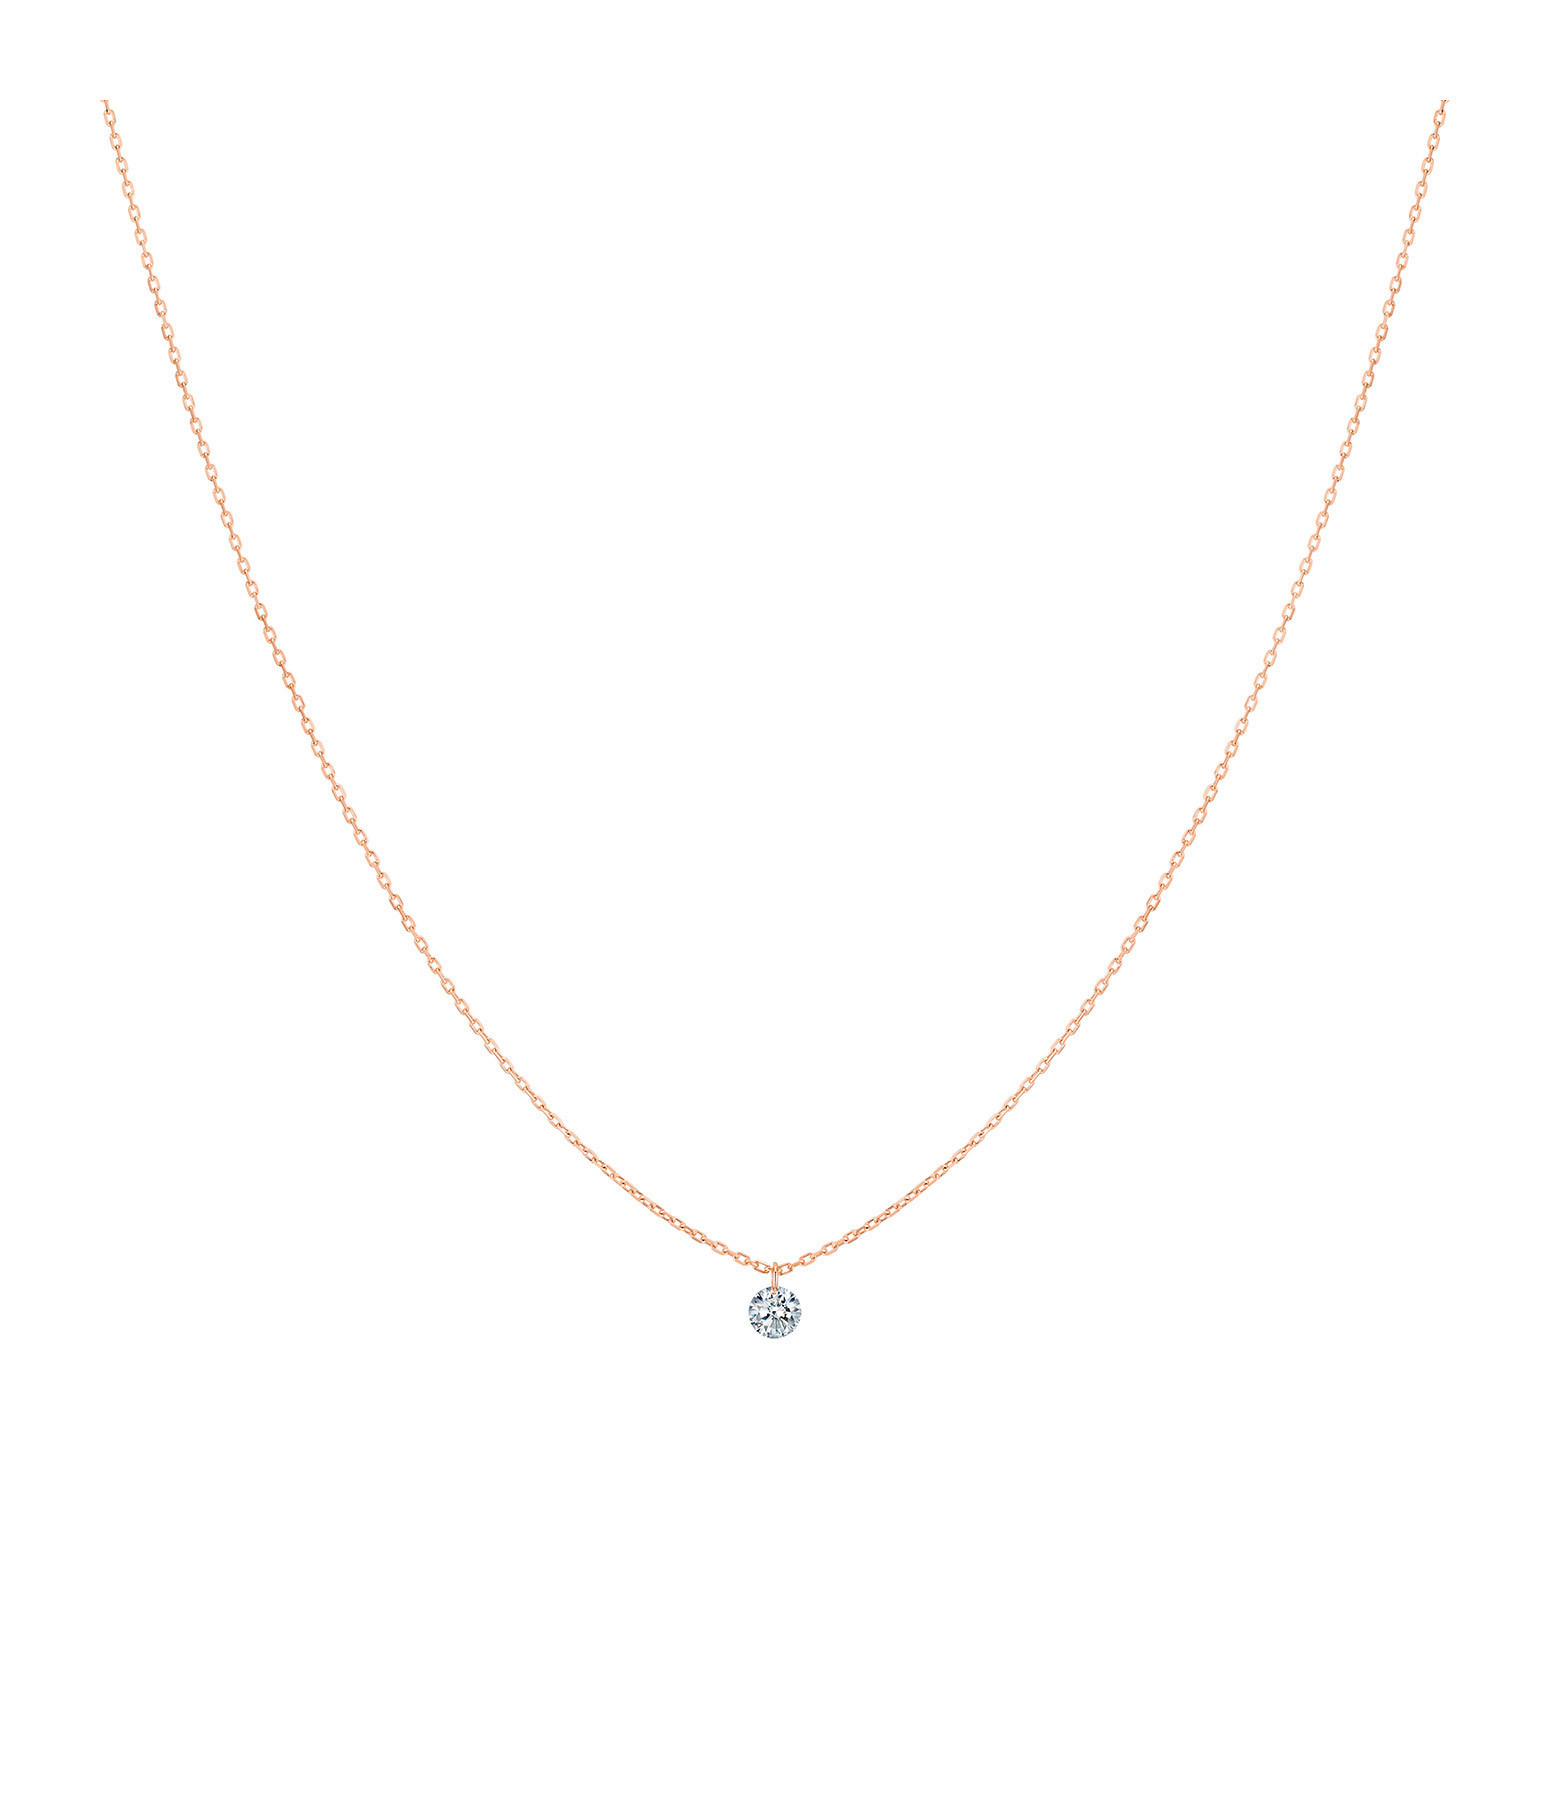 LA BRUNE & LA BLONDE - Collier 360° Diamant Brillant 0,10 Or Rose